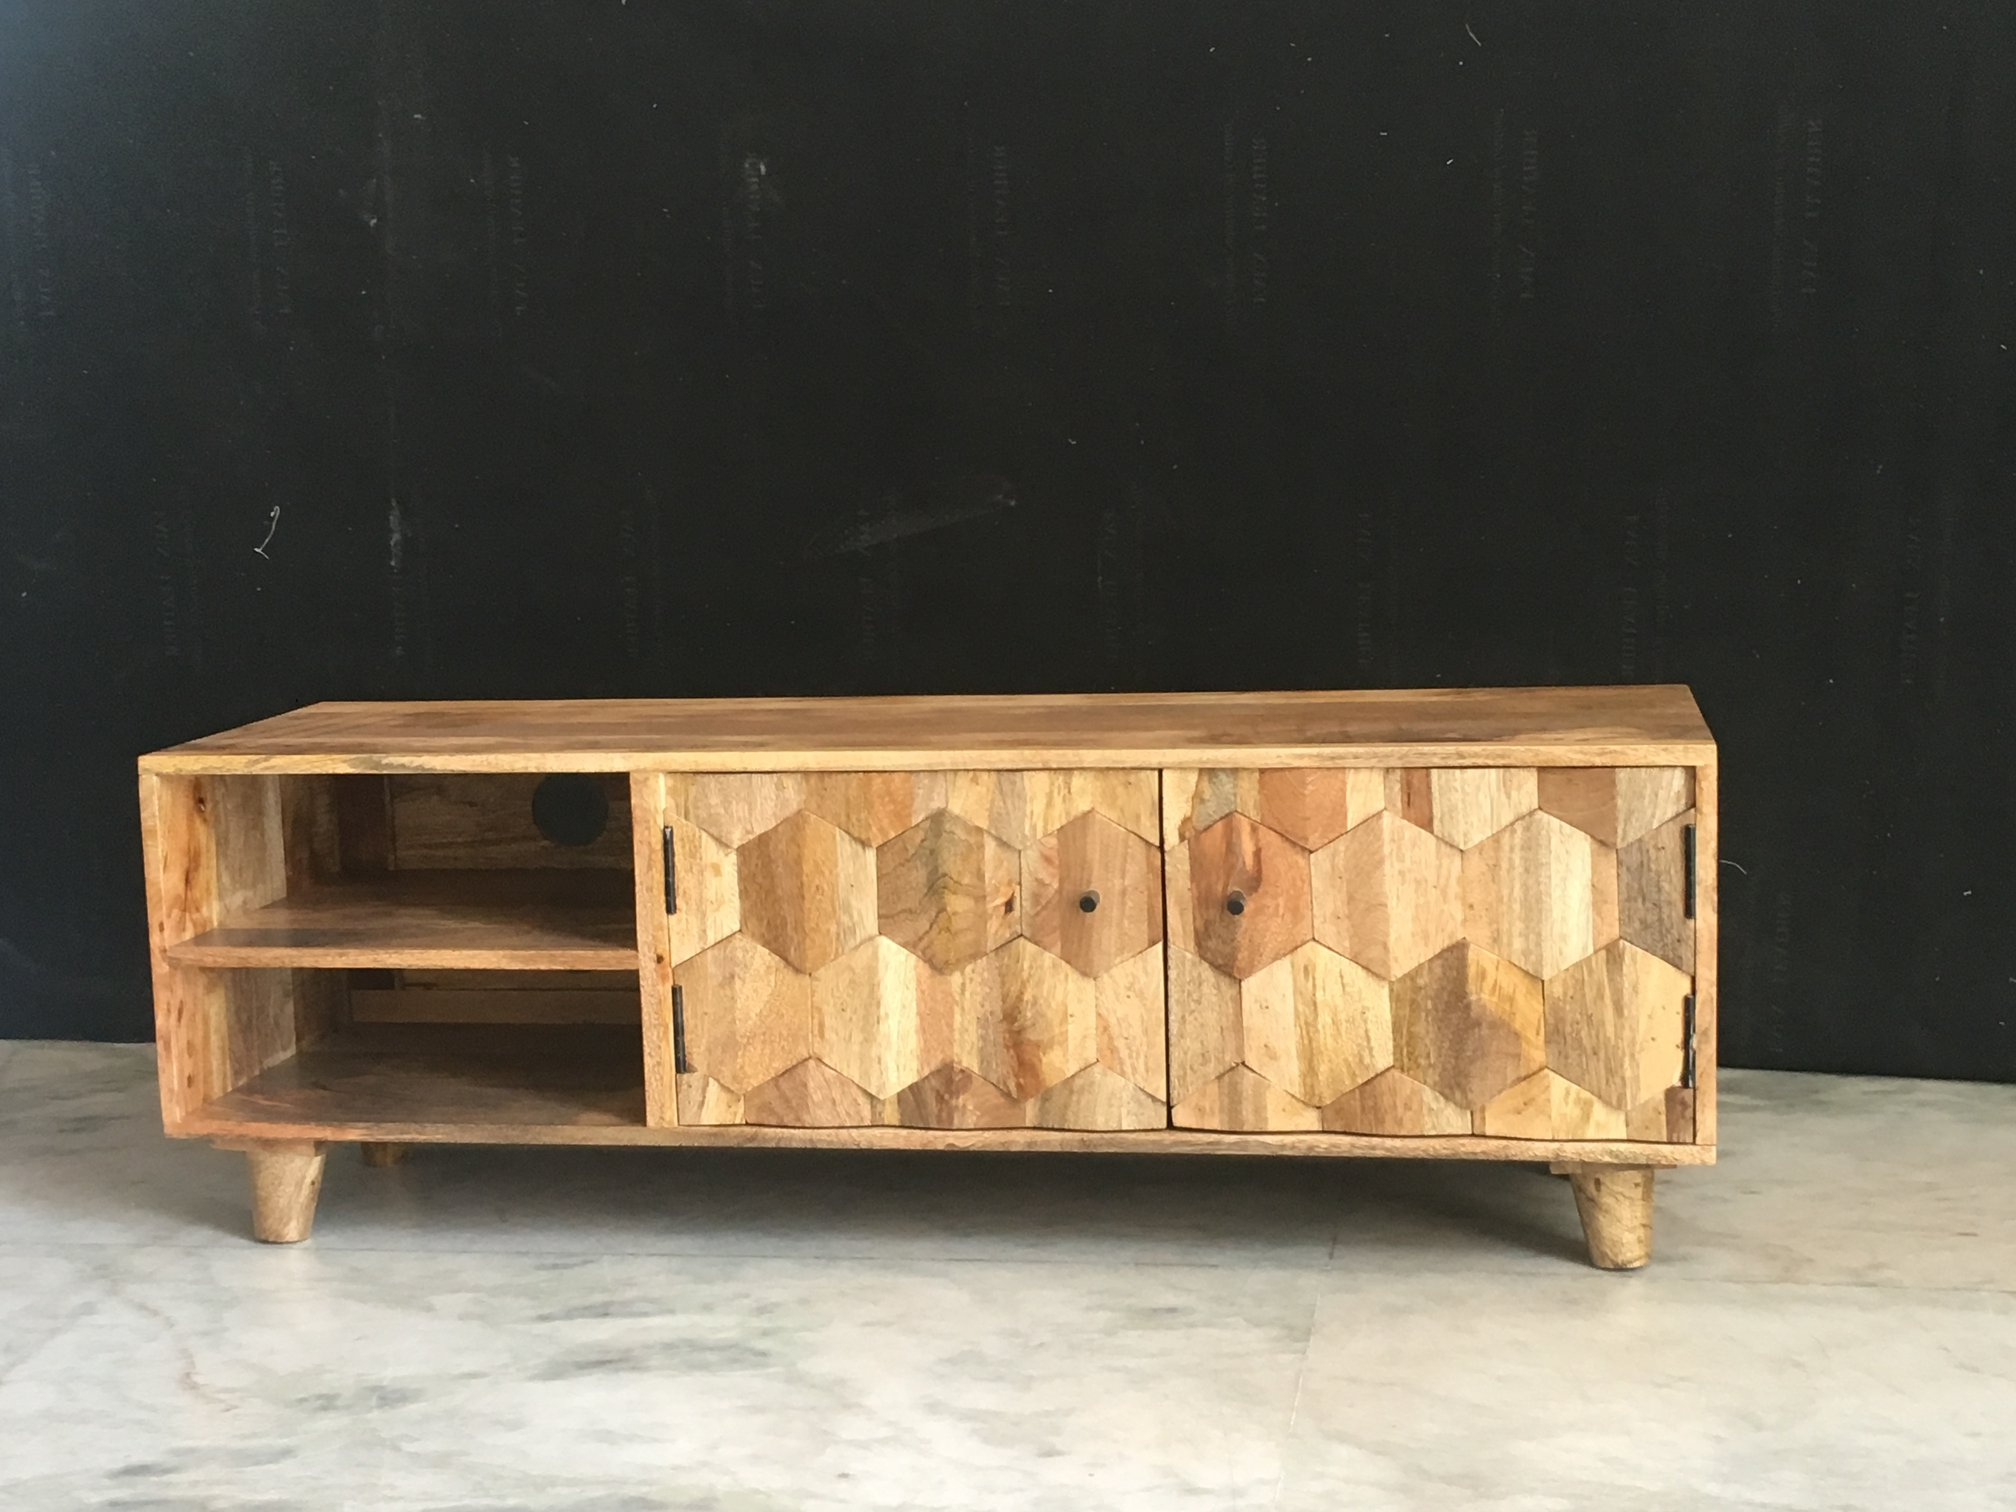 Most Recent Light Mango Wood Tv Stand / Media Unit With Hexagonal Patterns Throughout Mango Tv Units (View 18 of 20)